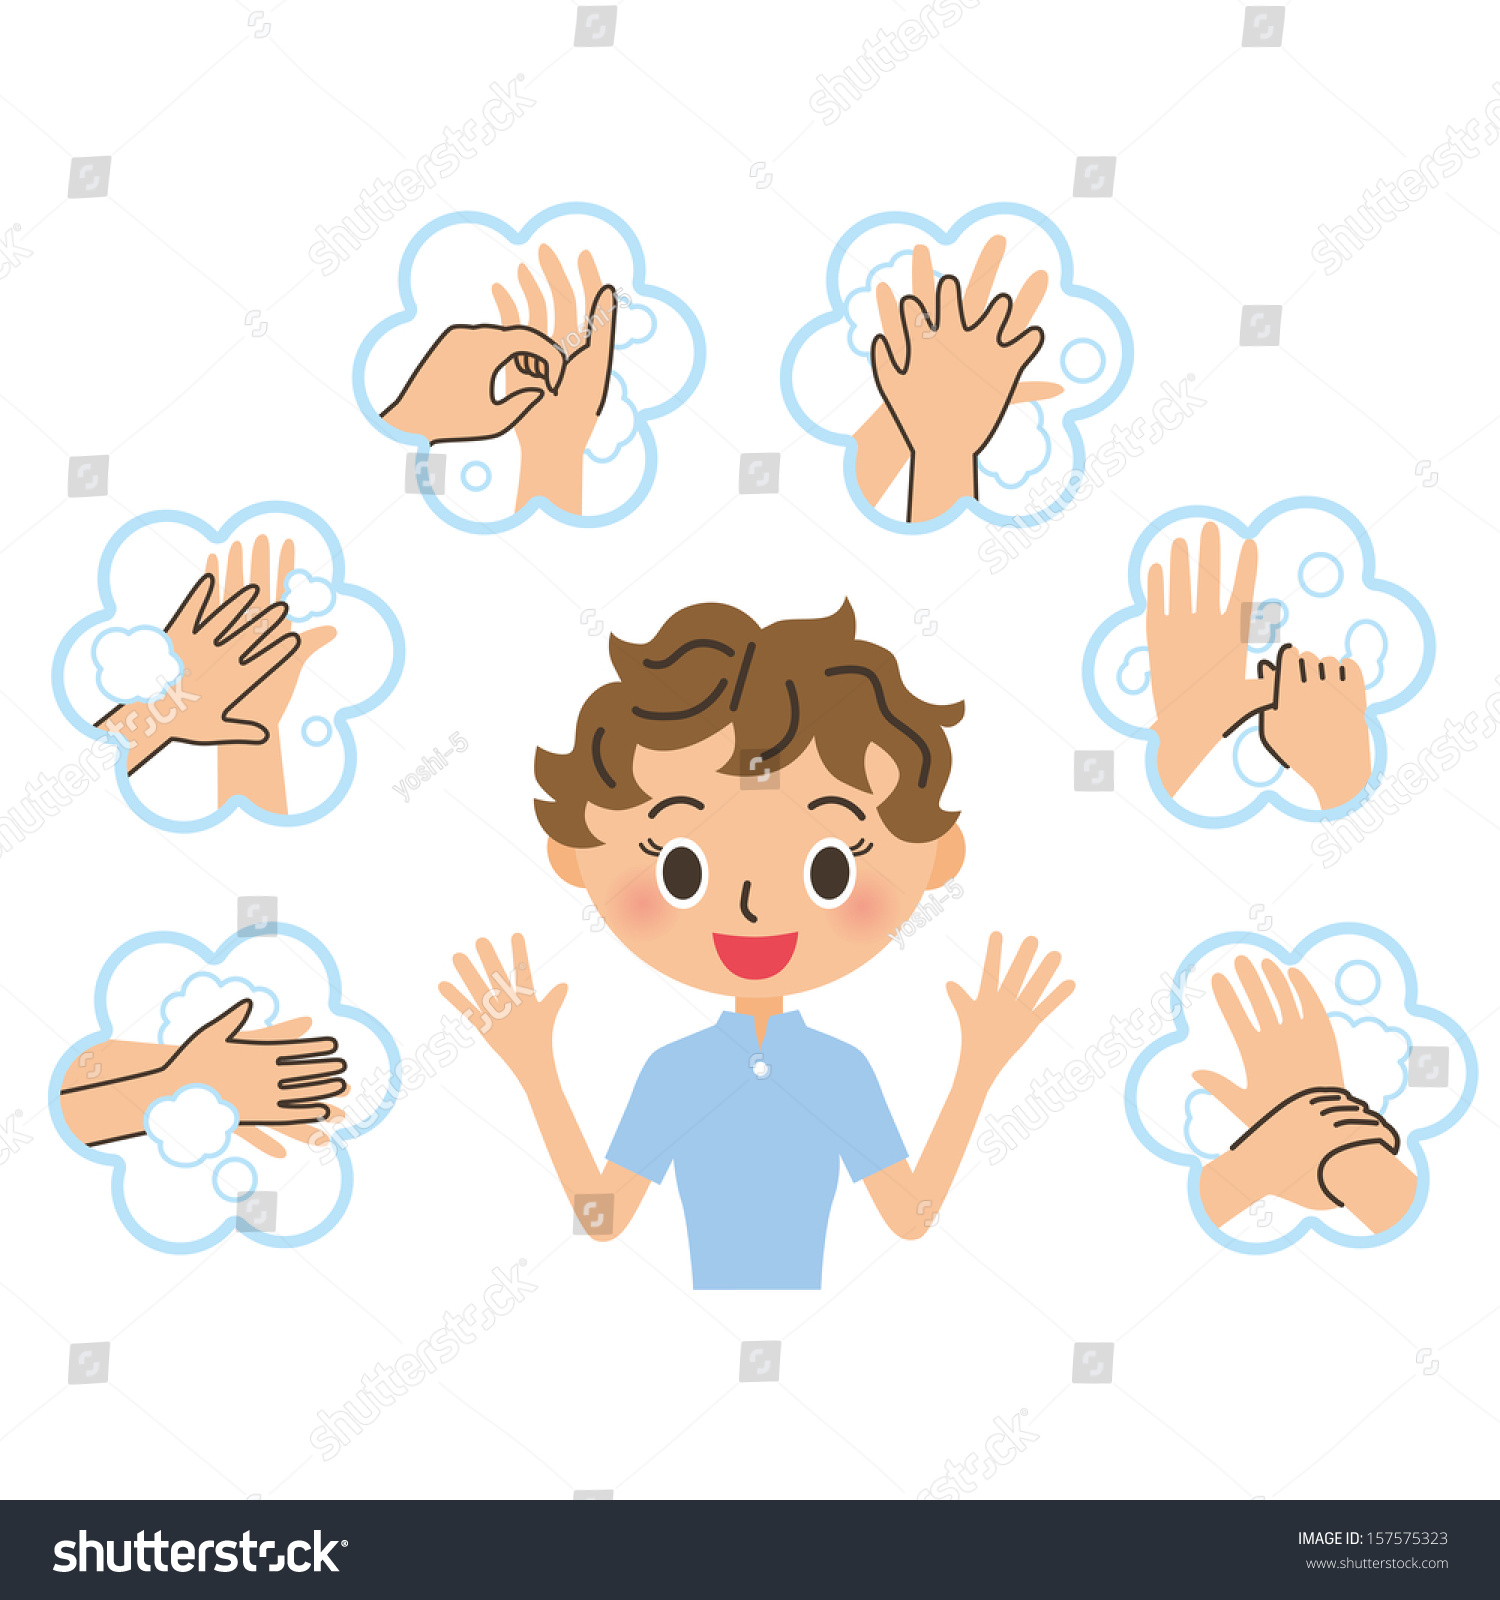 Clipart Hand Washing